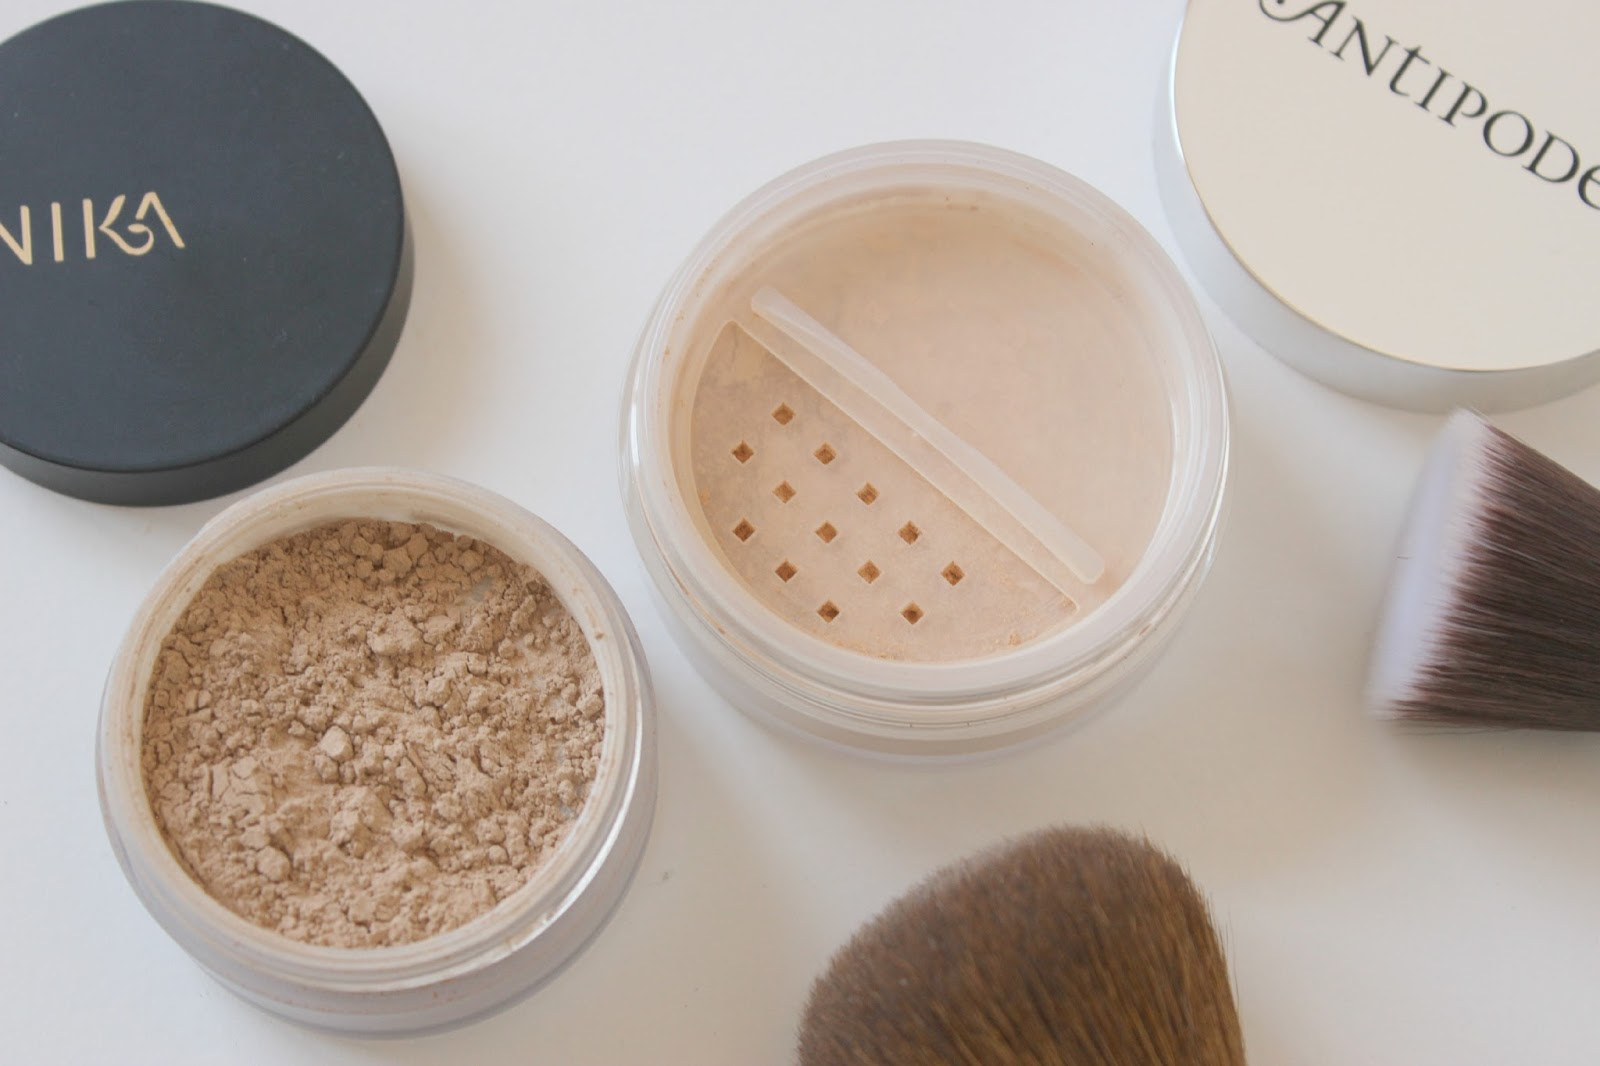 A picture of Antipodes Mineral Foundation